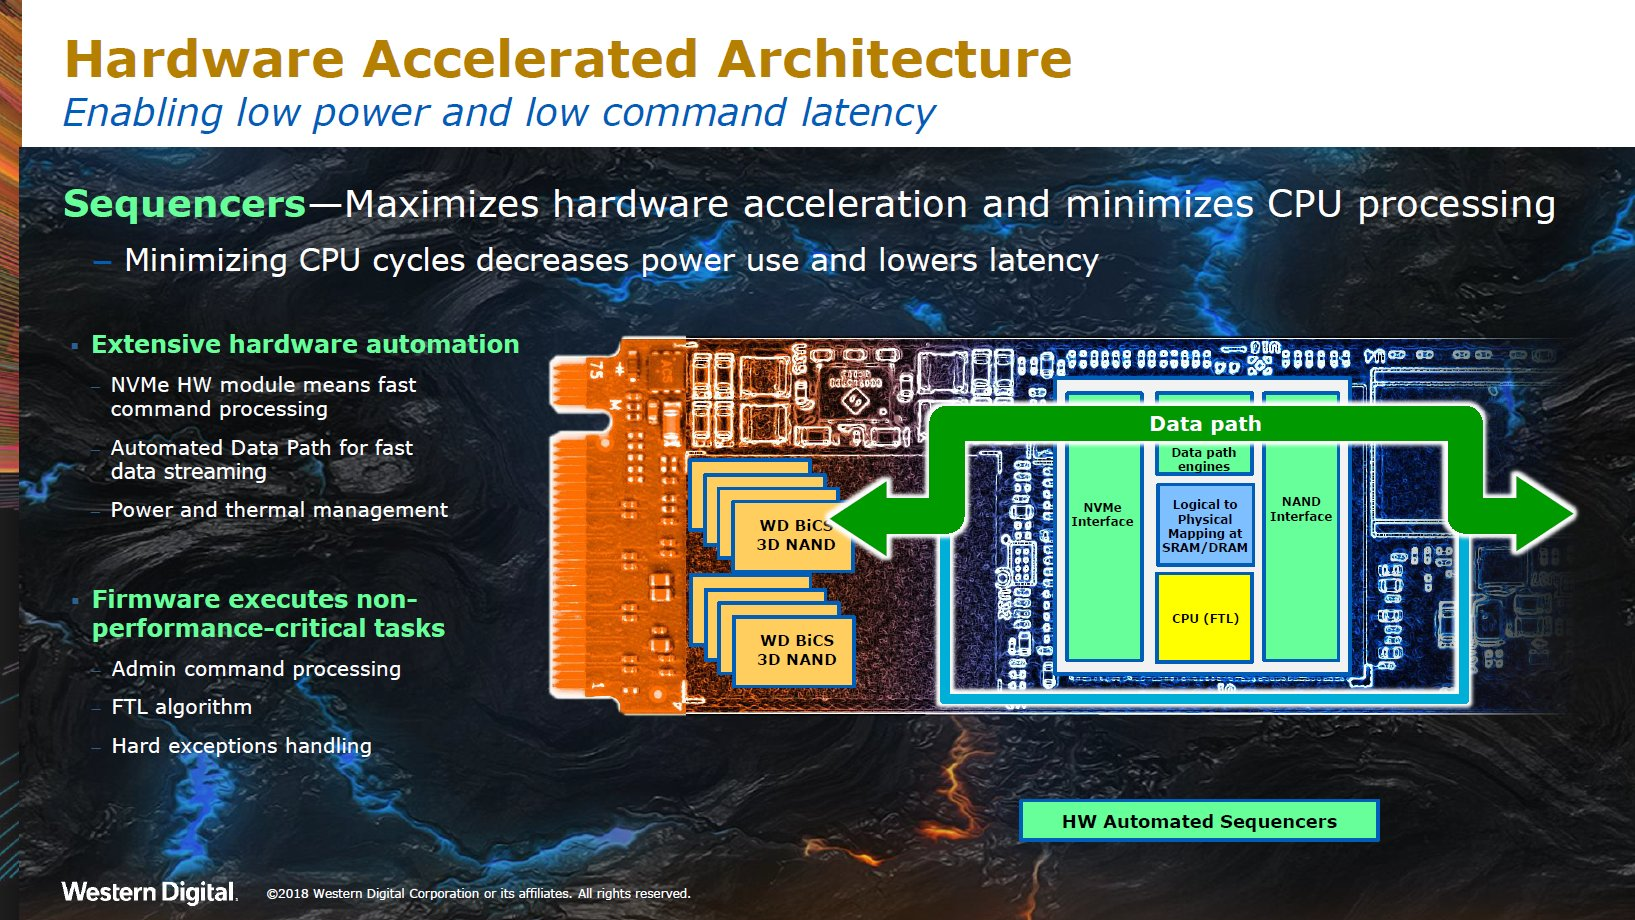 Hardware Accelerated Architecture